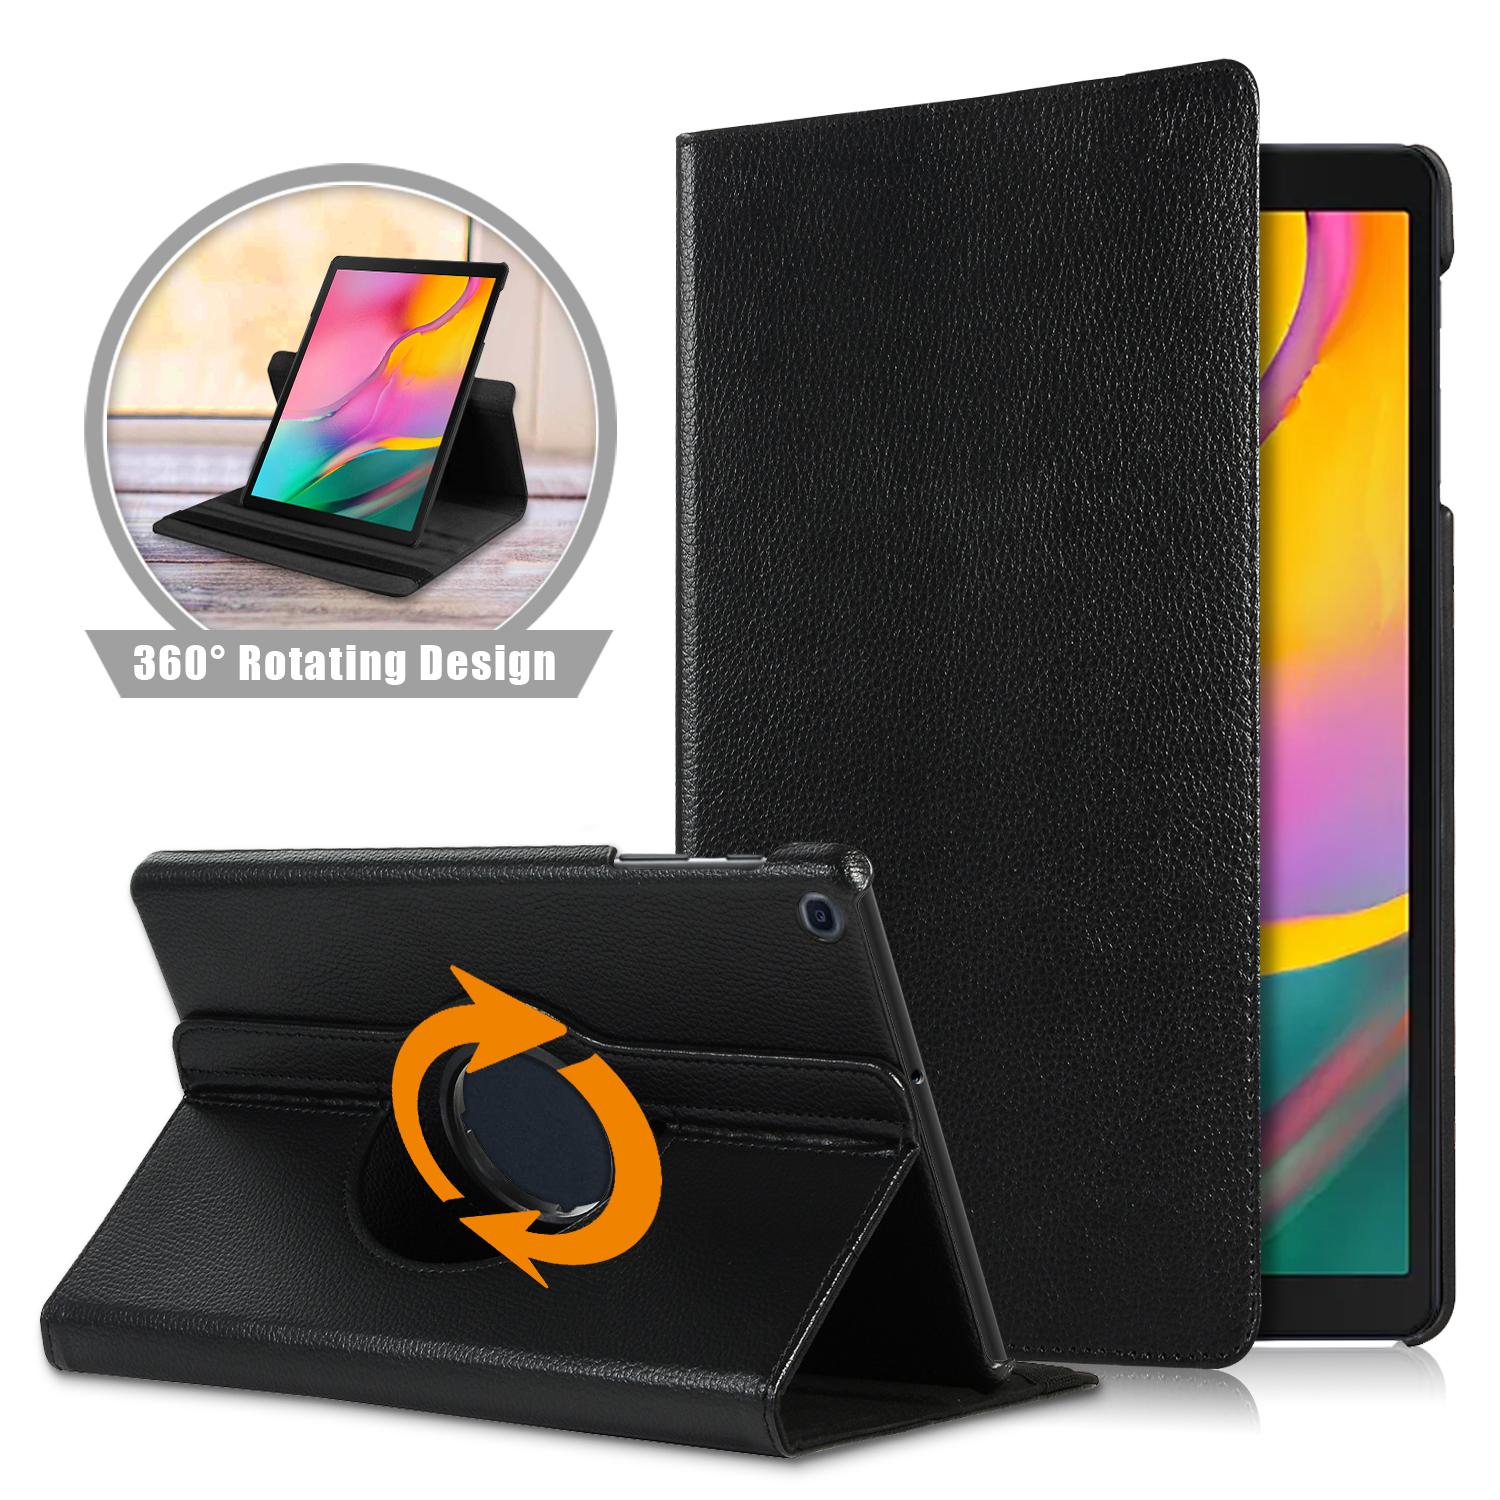 Case For Samsung Galaxy Tab A 10.1 SM-T510 SM-T515 Tablet Cover For Samsung Tab A 10.1 2019 Case